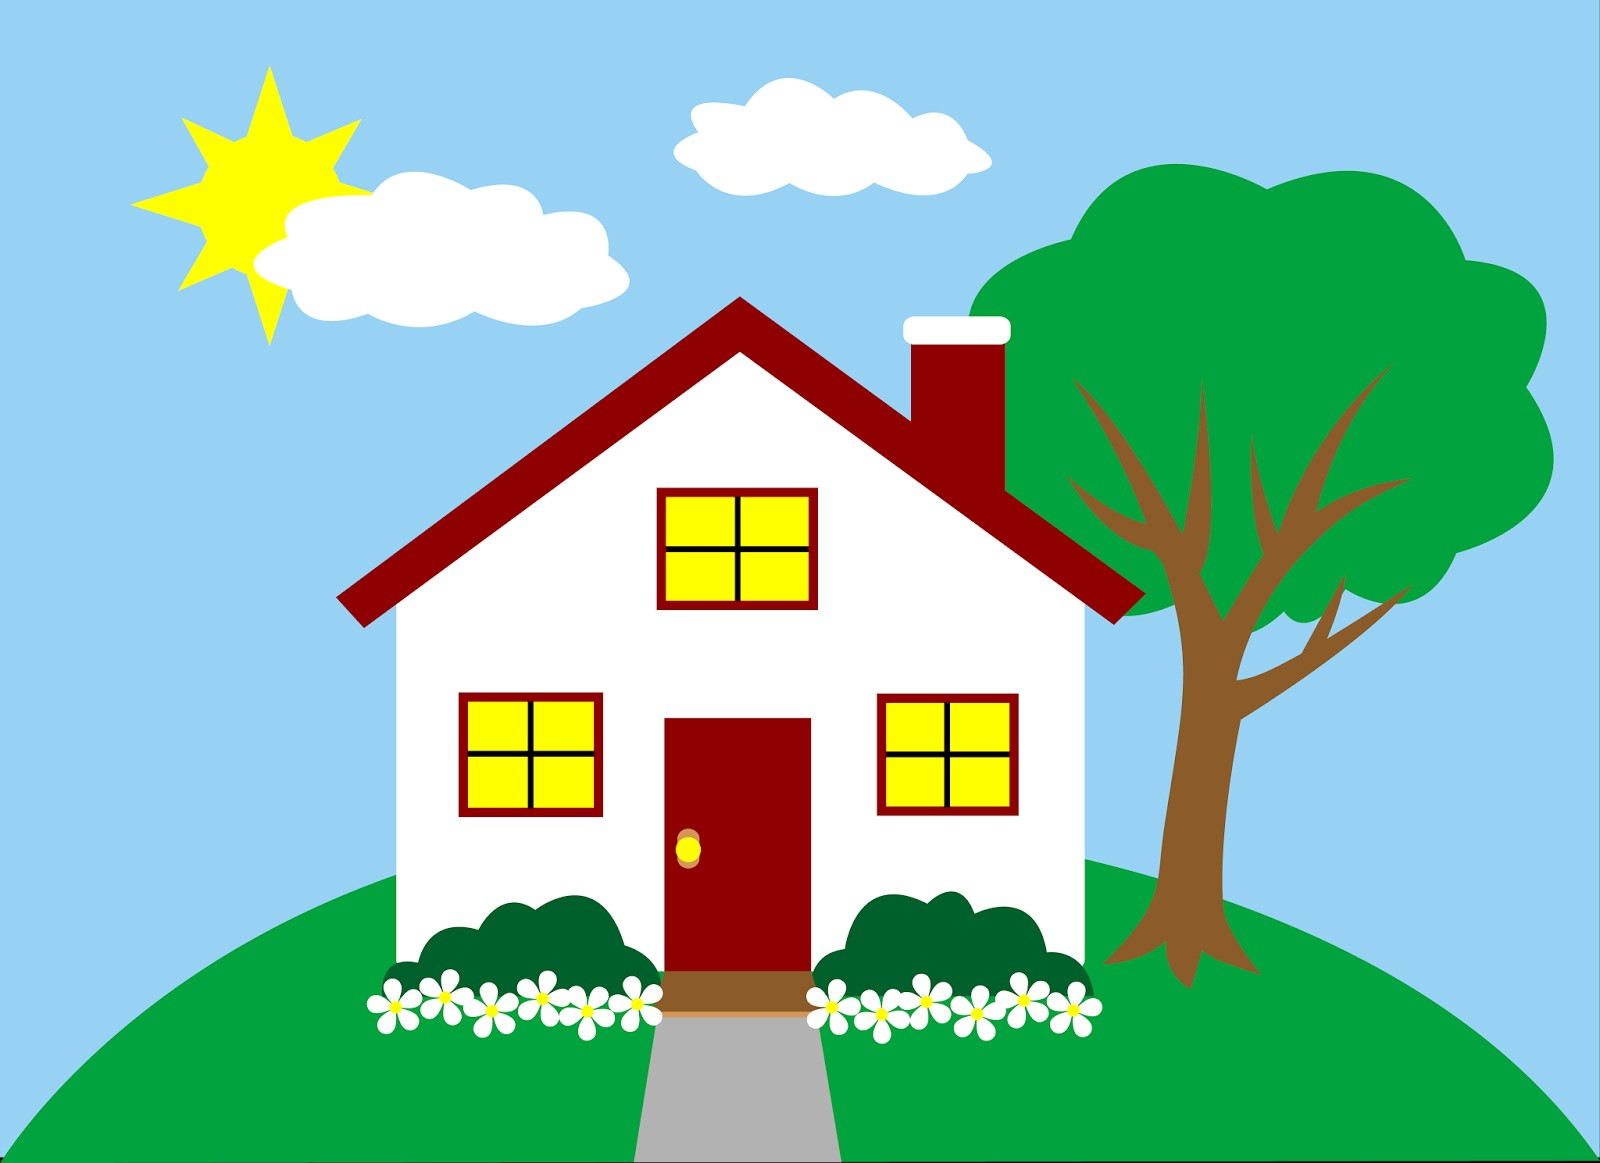 Home clipart free cliparts for work study and entertainment